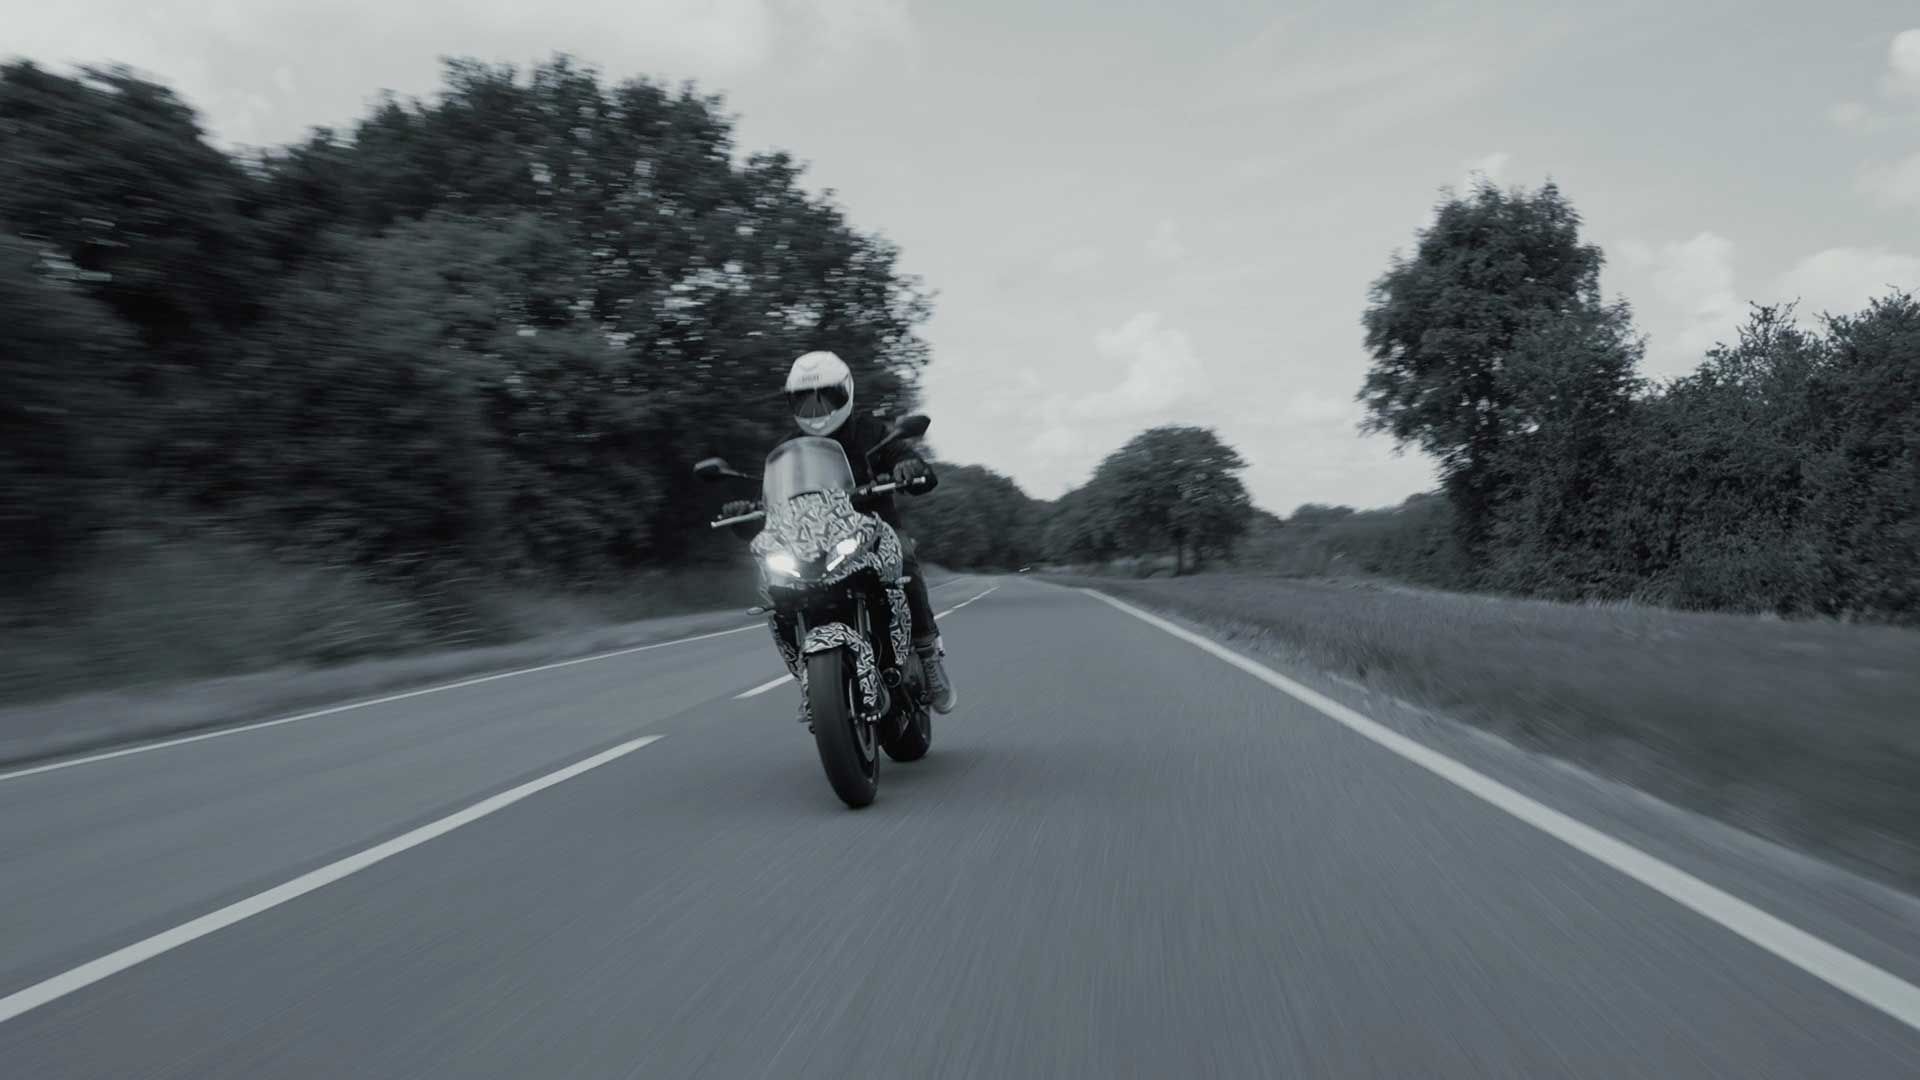 A blurry view of a rider enjoying the new Triumph Tiger prototype, features in a Triumph Tiger Tease release from the UK company.